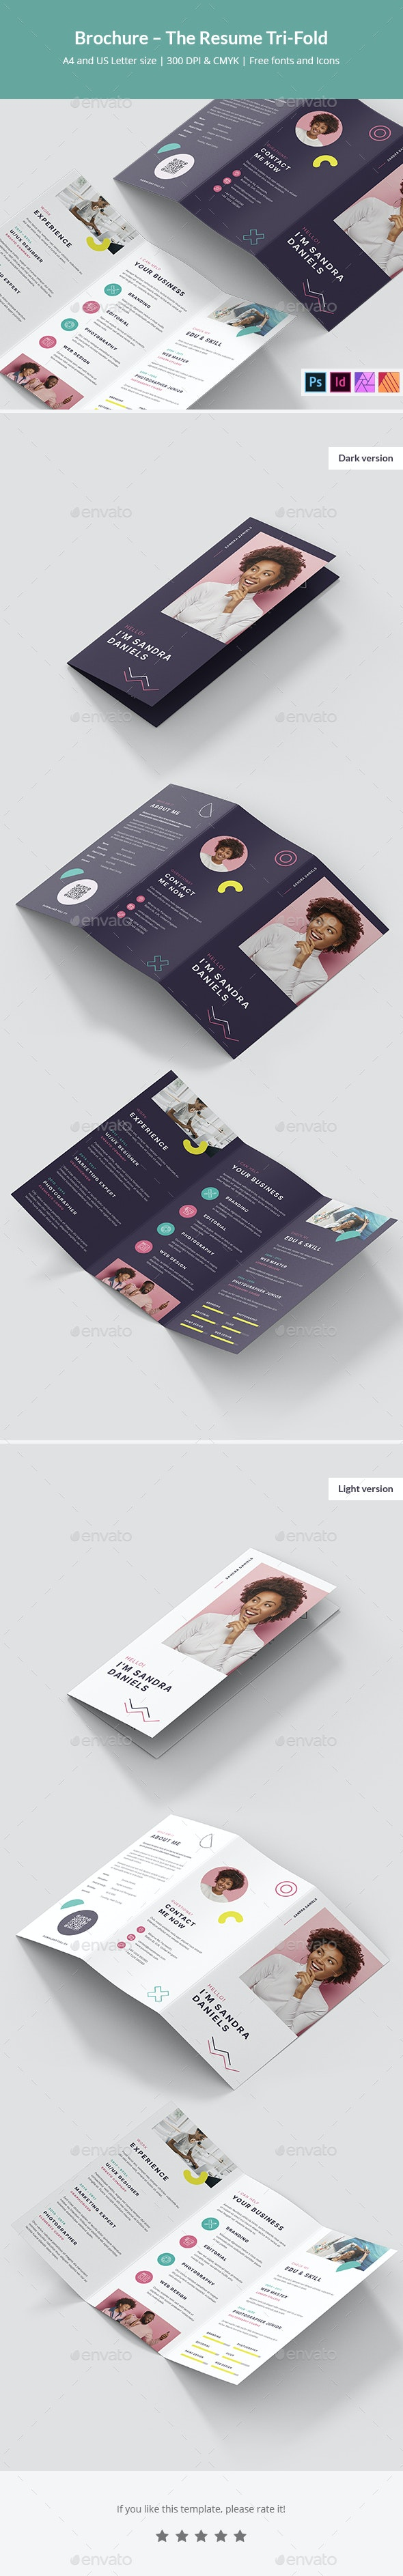 Brochure – The Resume Tri-Fold - Resumes Stationery